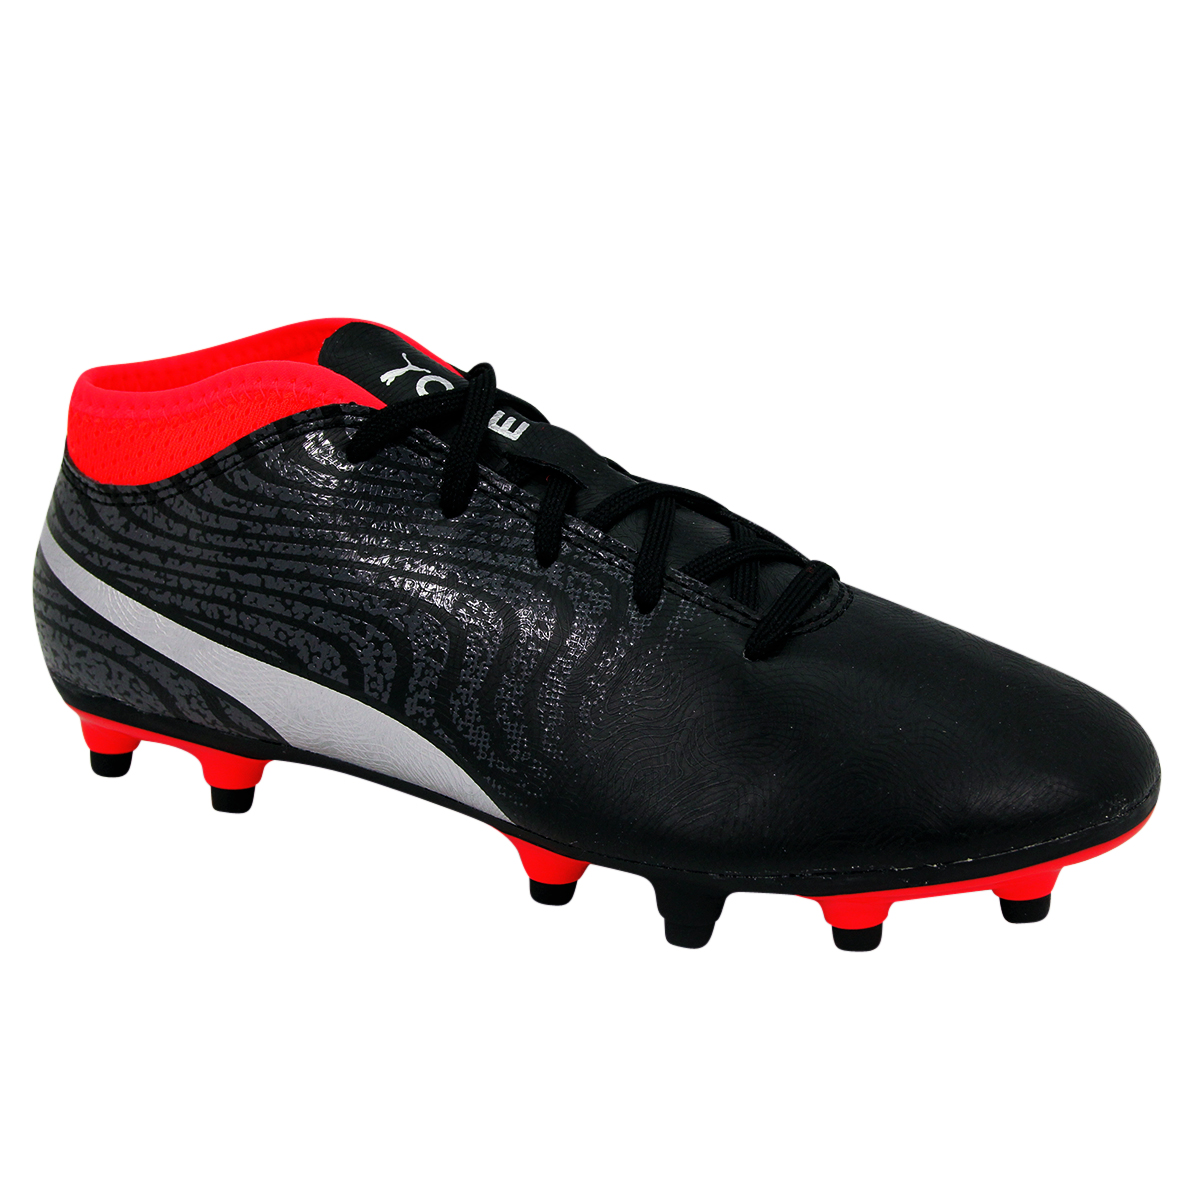 aa412c8c2ff52 Chaussures de football PUMA ONE 18 4 FG JR